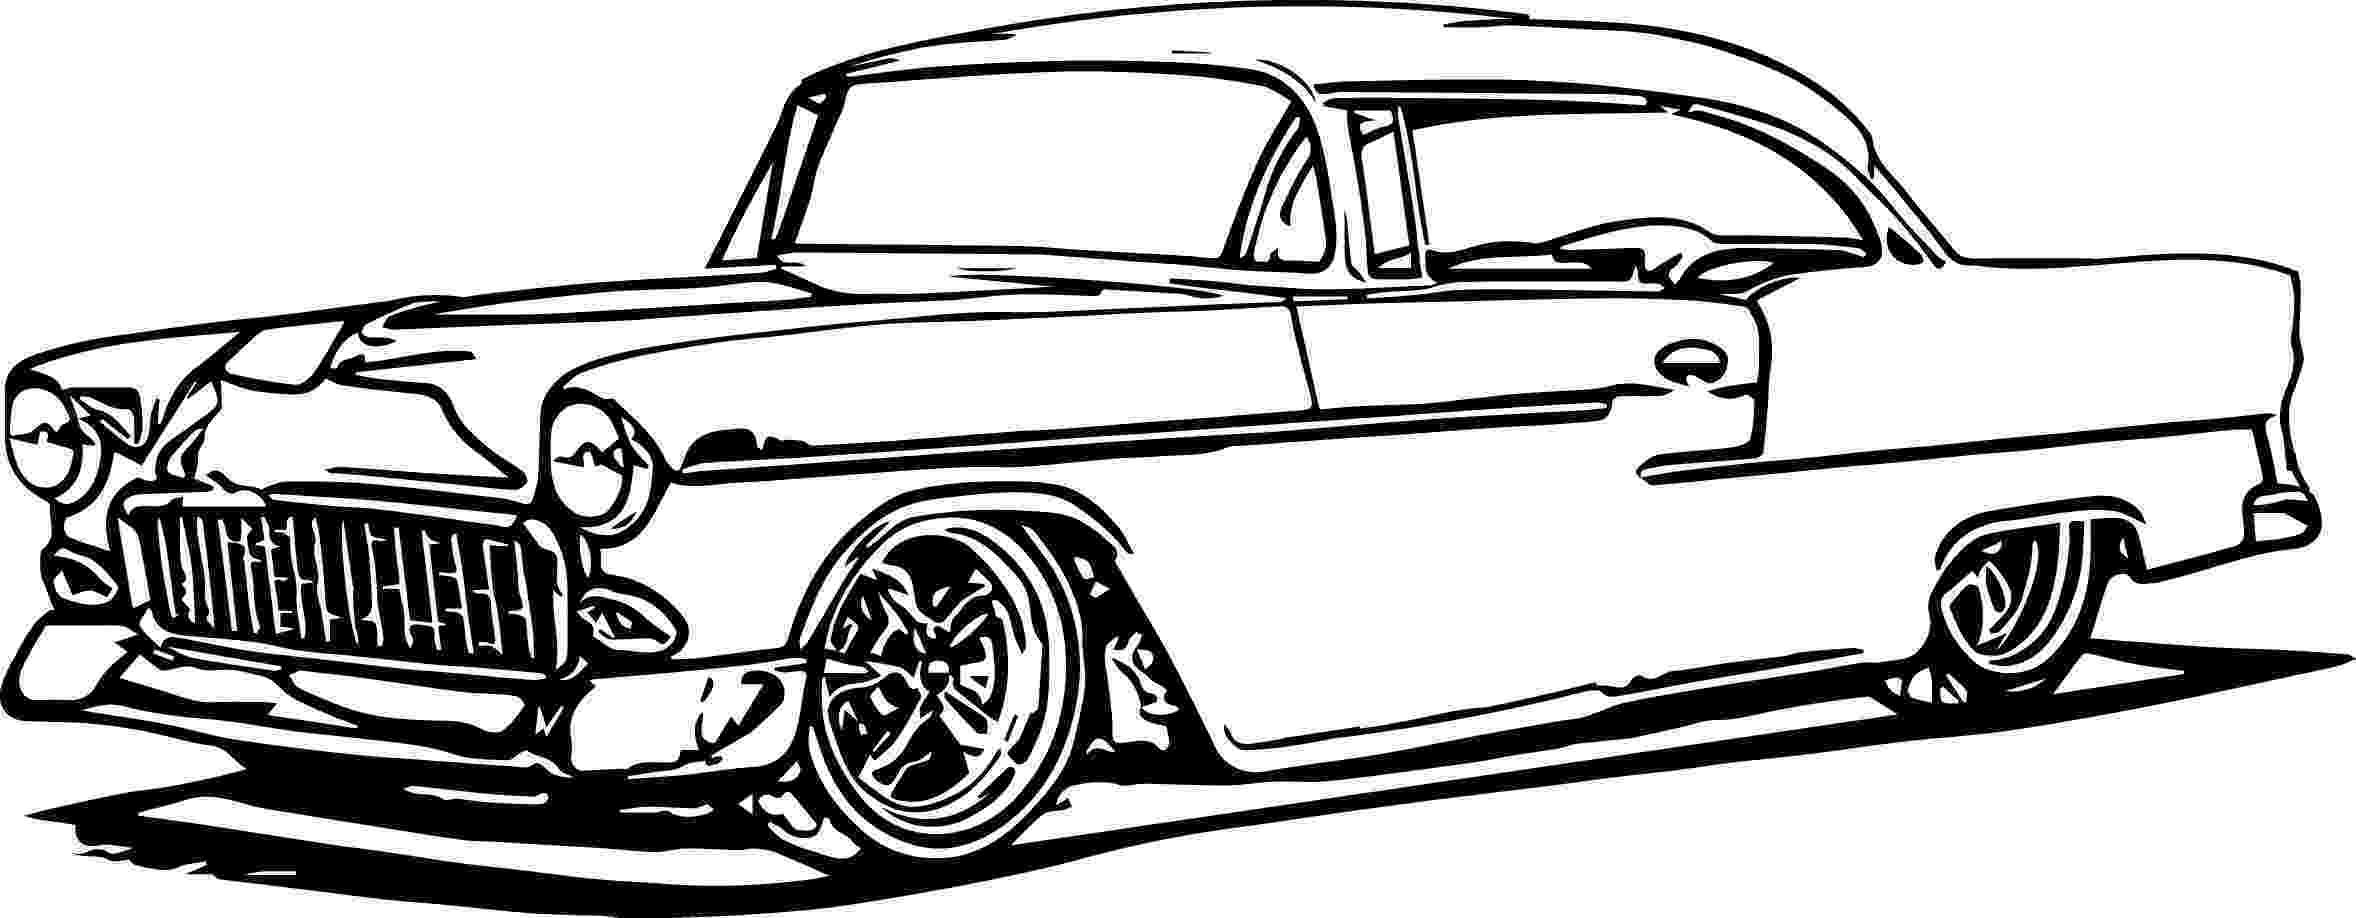 coloring pages hot rod cars classic hot rod car coloring page printable rod hot coloring cars pages